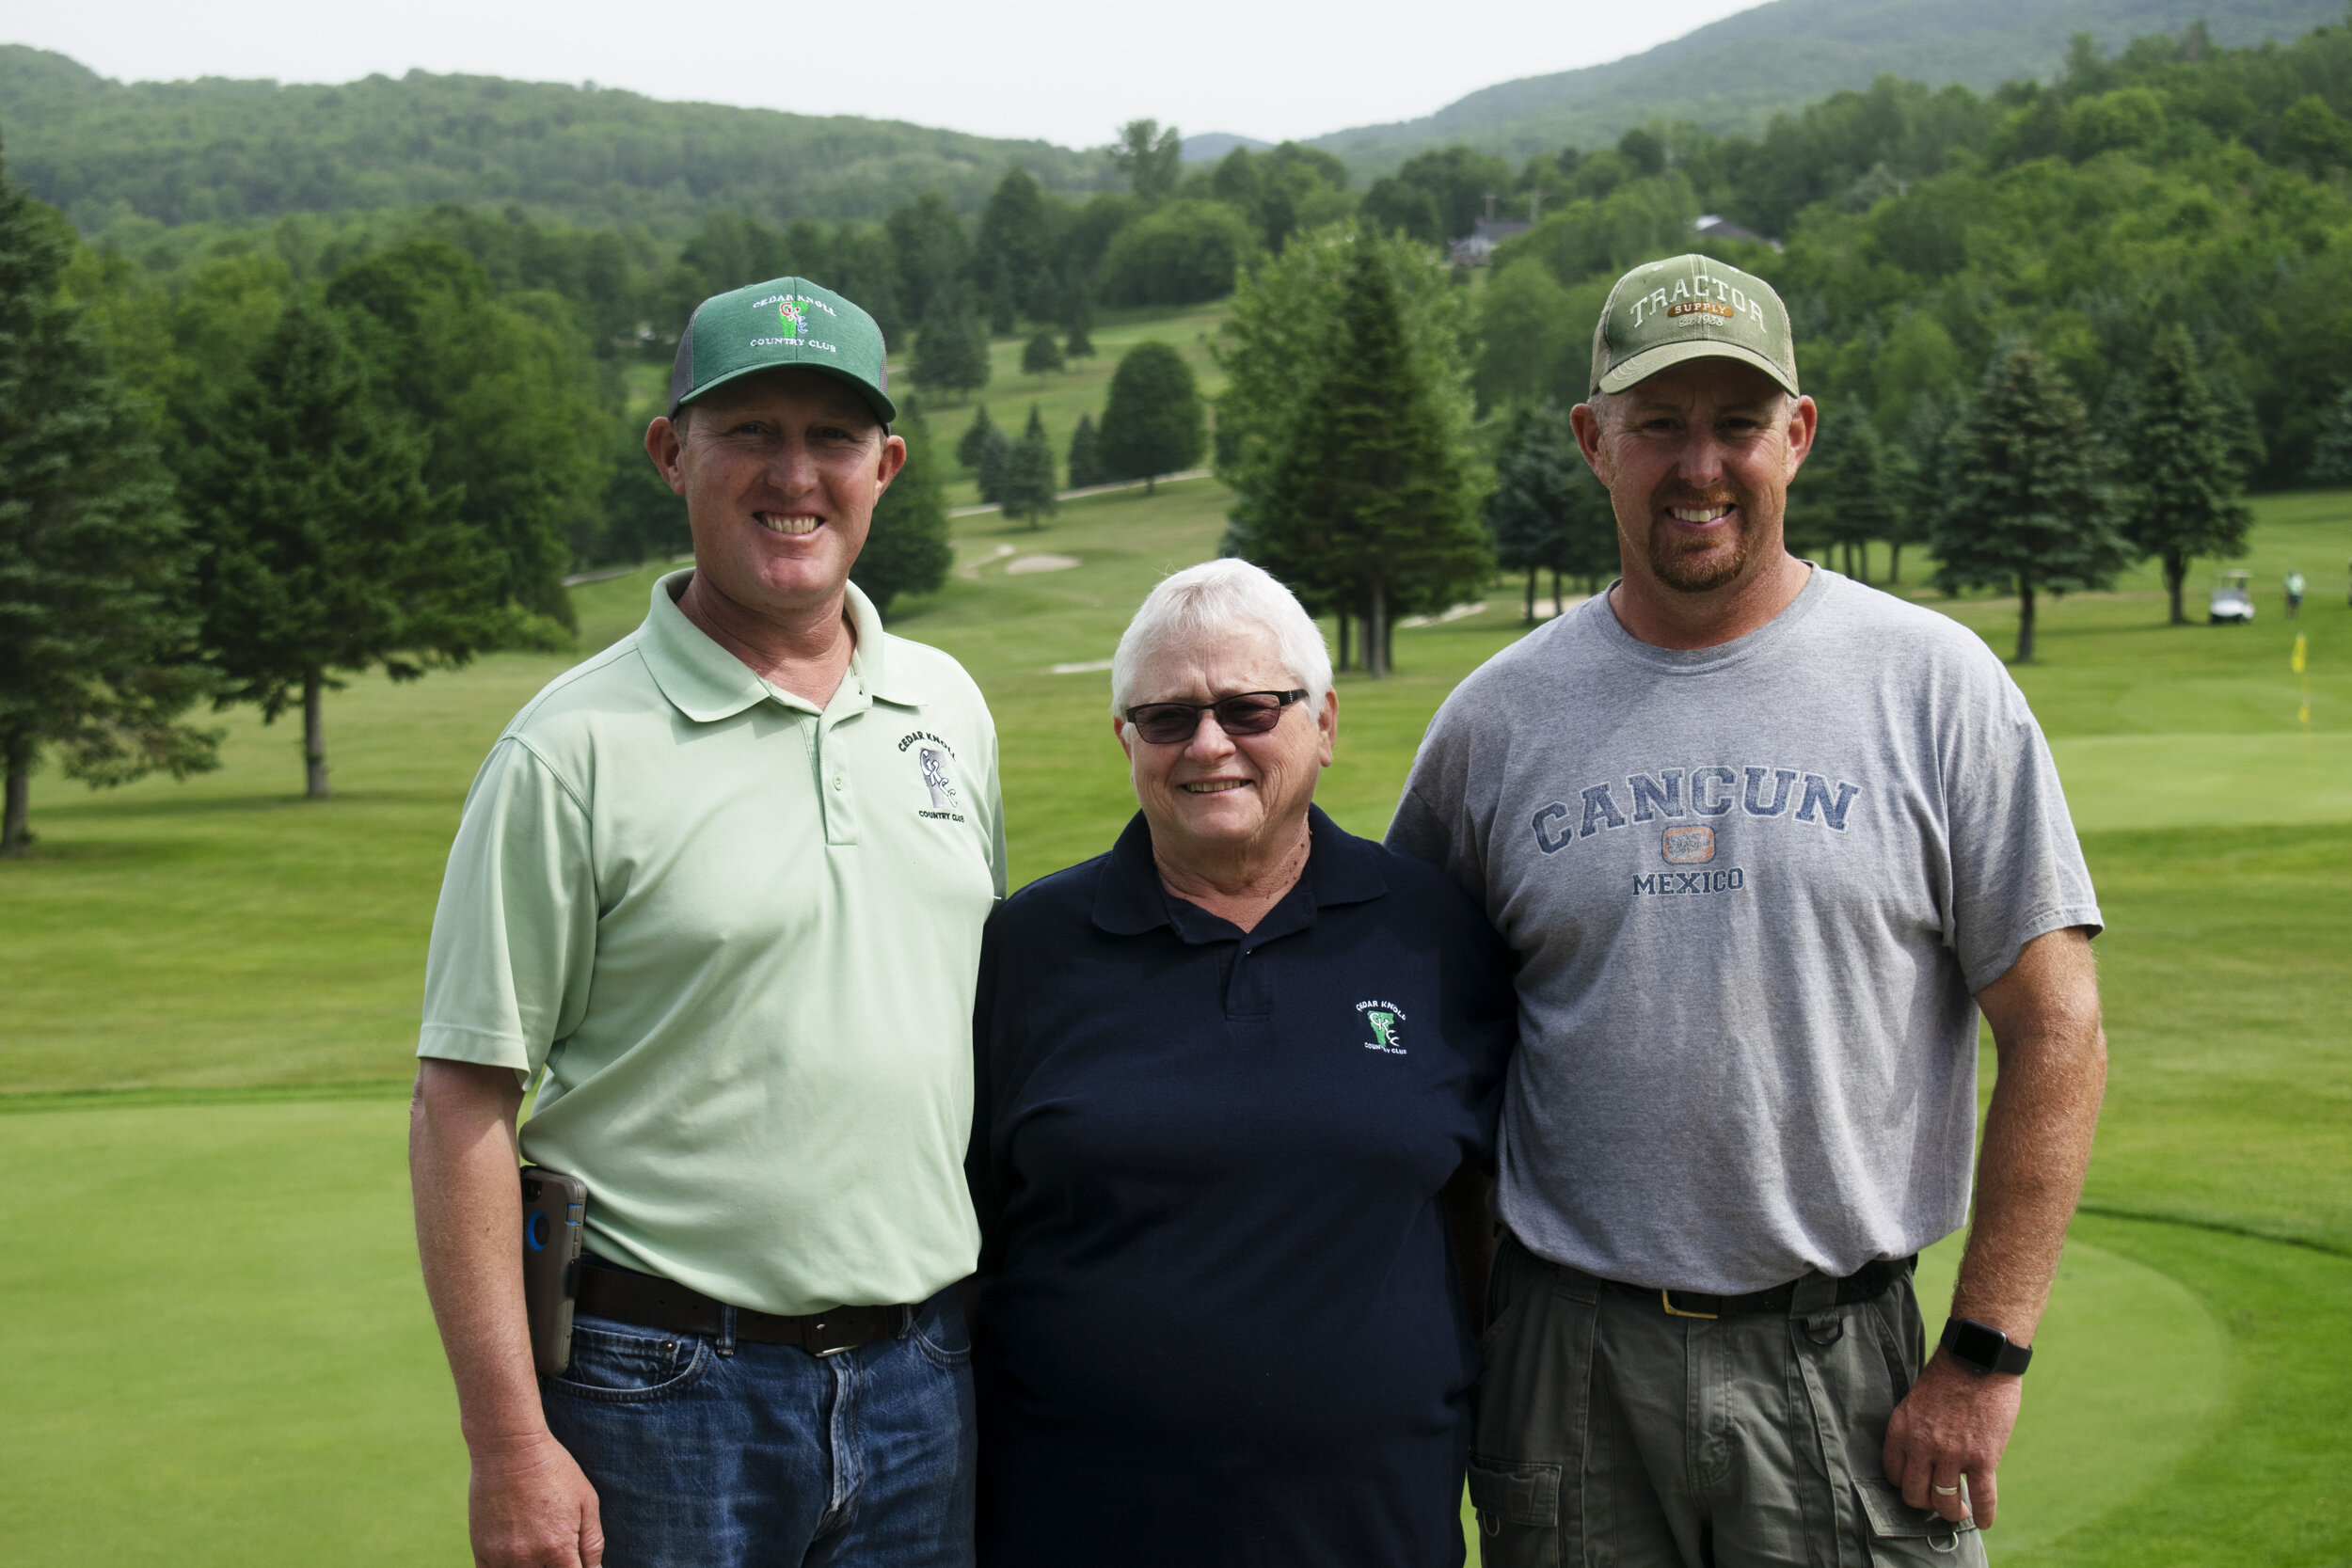 Fromleft: Owners of Cedar Knoll Country Club Tom, Ruth, and Tim Ayer. Photo by Olivia Nye.